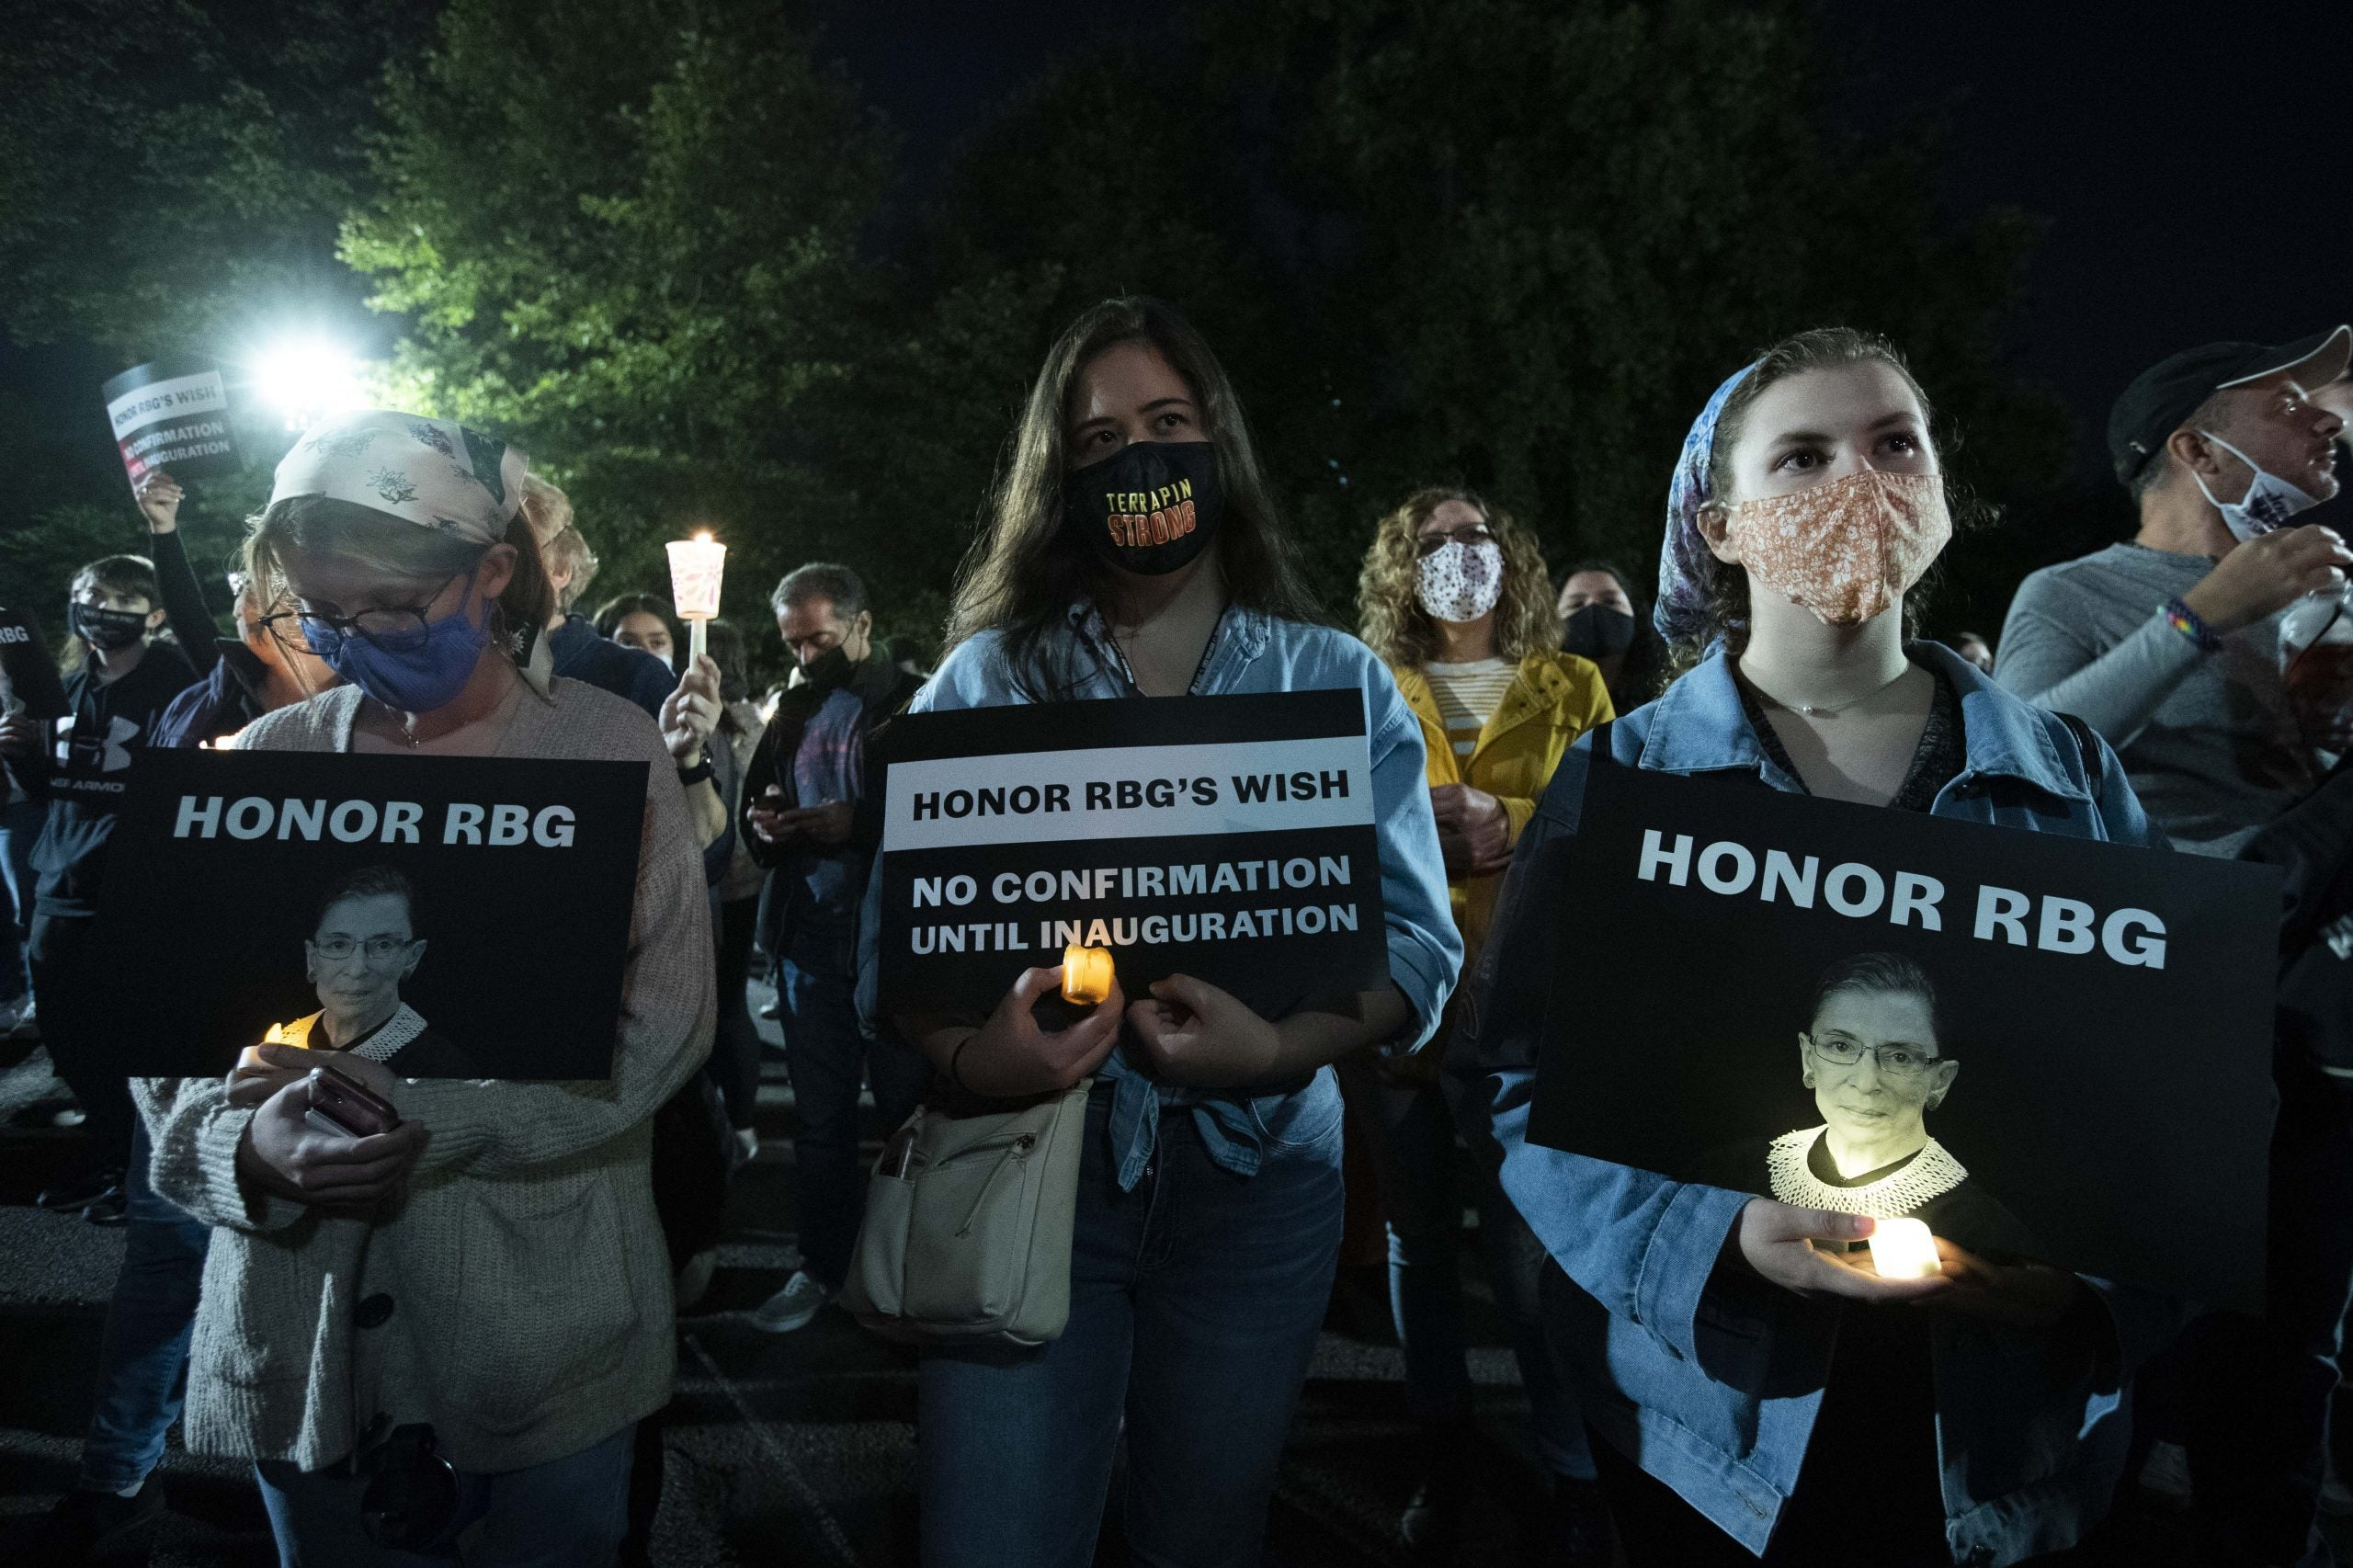 People hold signs and candles as they pay their respects to Ruth Bader Ginsburg near the US Supreme Court in Washington, DC on September 19, 2020. - US President Donald Trump vowed to quickly nominate a successor, likely a woman, to replace late Supreme Court Justice Ruth Bader Ginsburg, only a day after the death of the liberal stalwart. (Photo by Jose Luis Magana / AFP) (Photo by JOSE LUIS MAGANA/AFP via Getty Images)